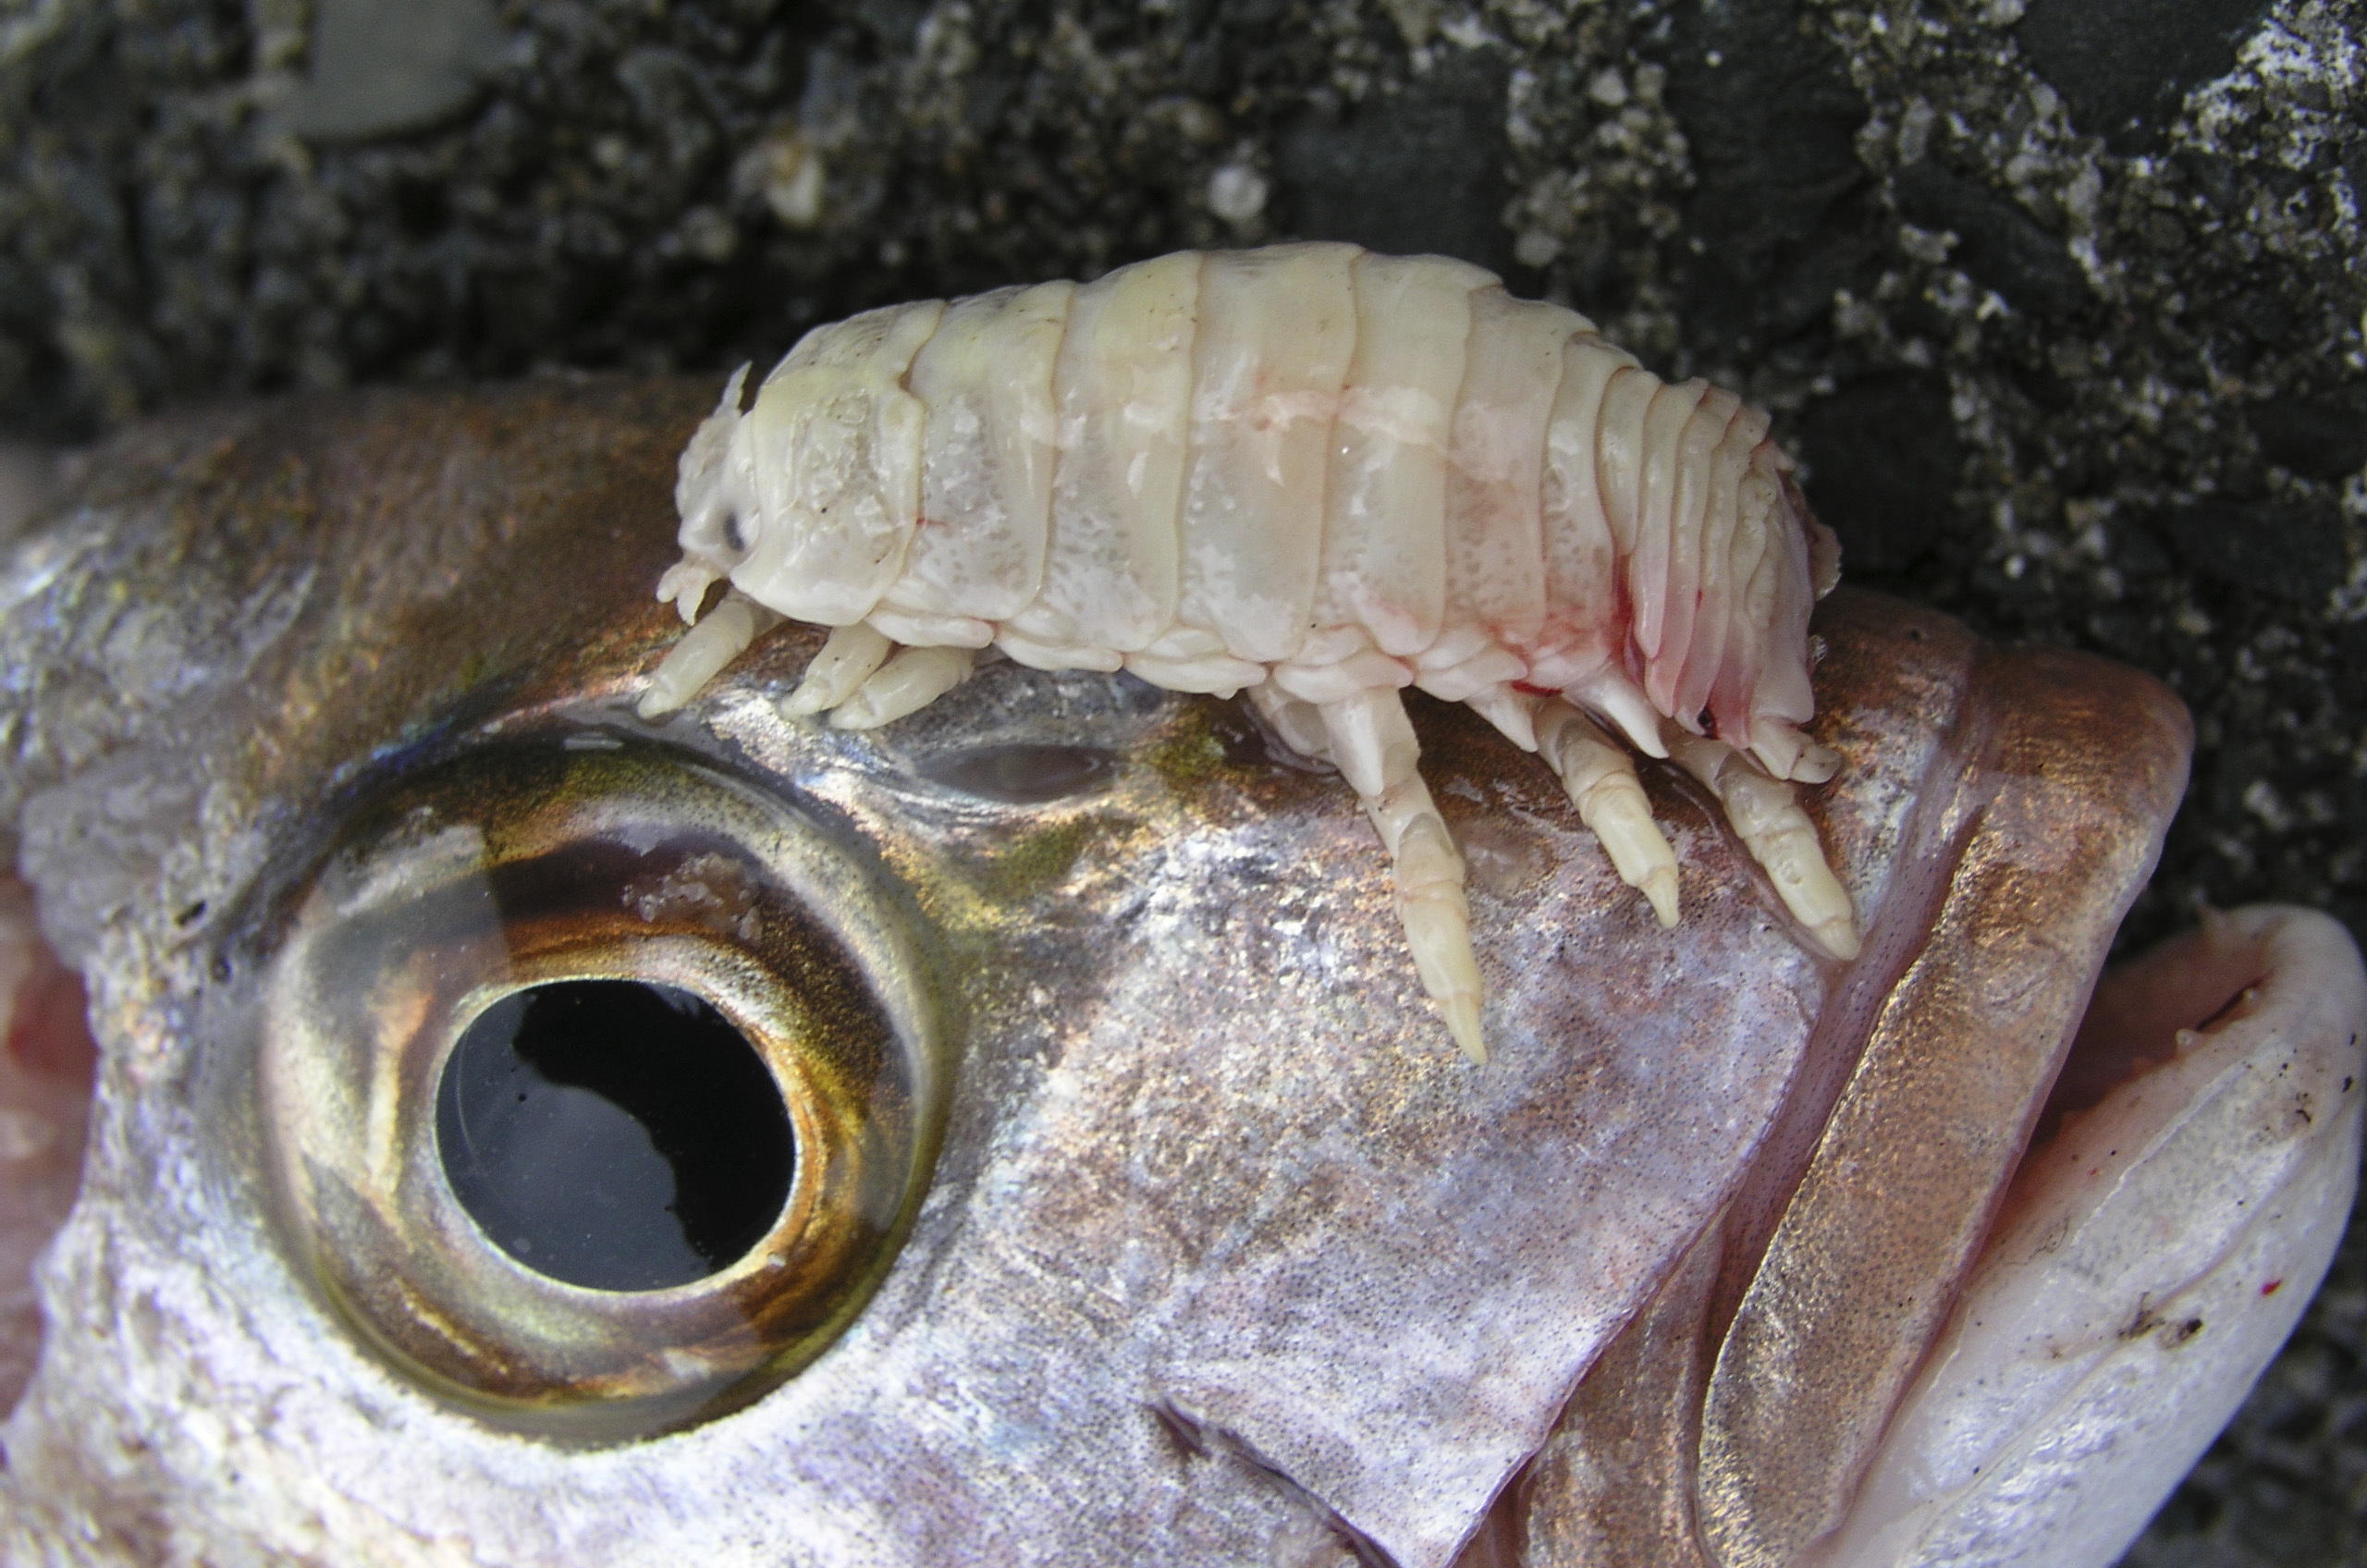 Image of Tongue-Eating Isopod